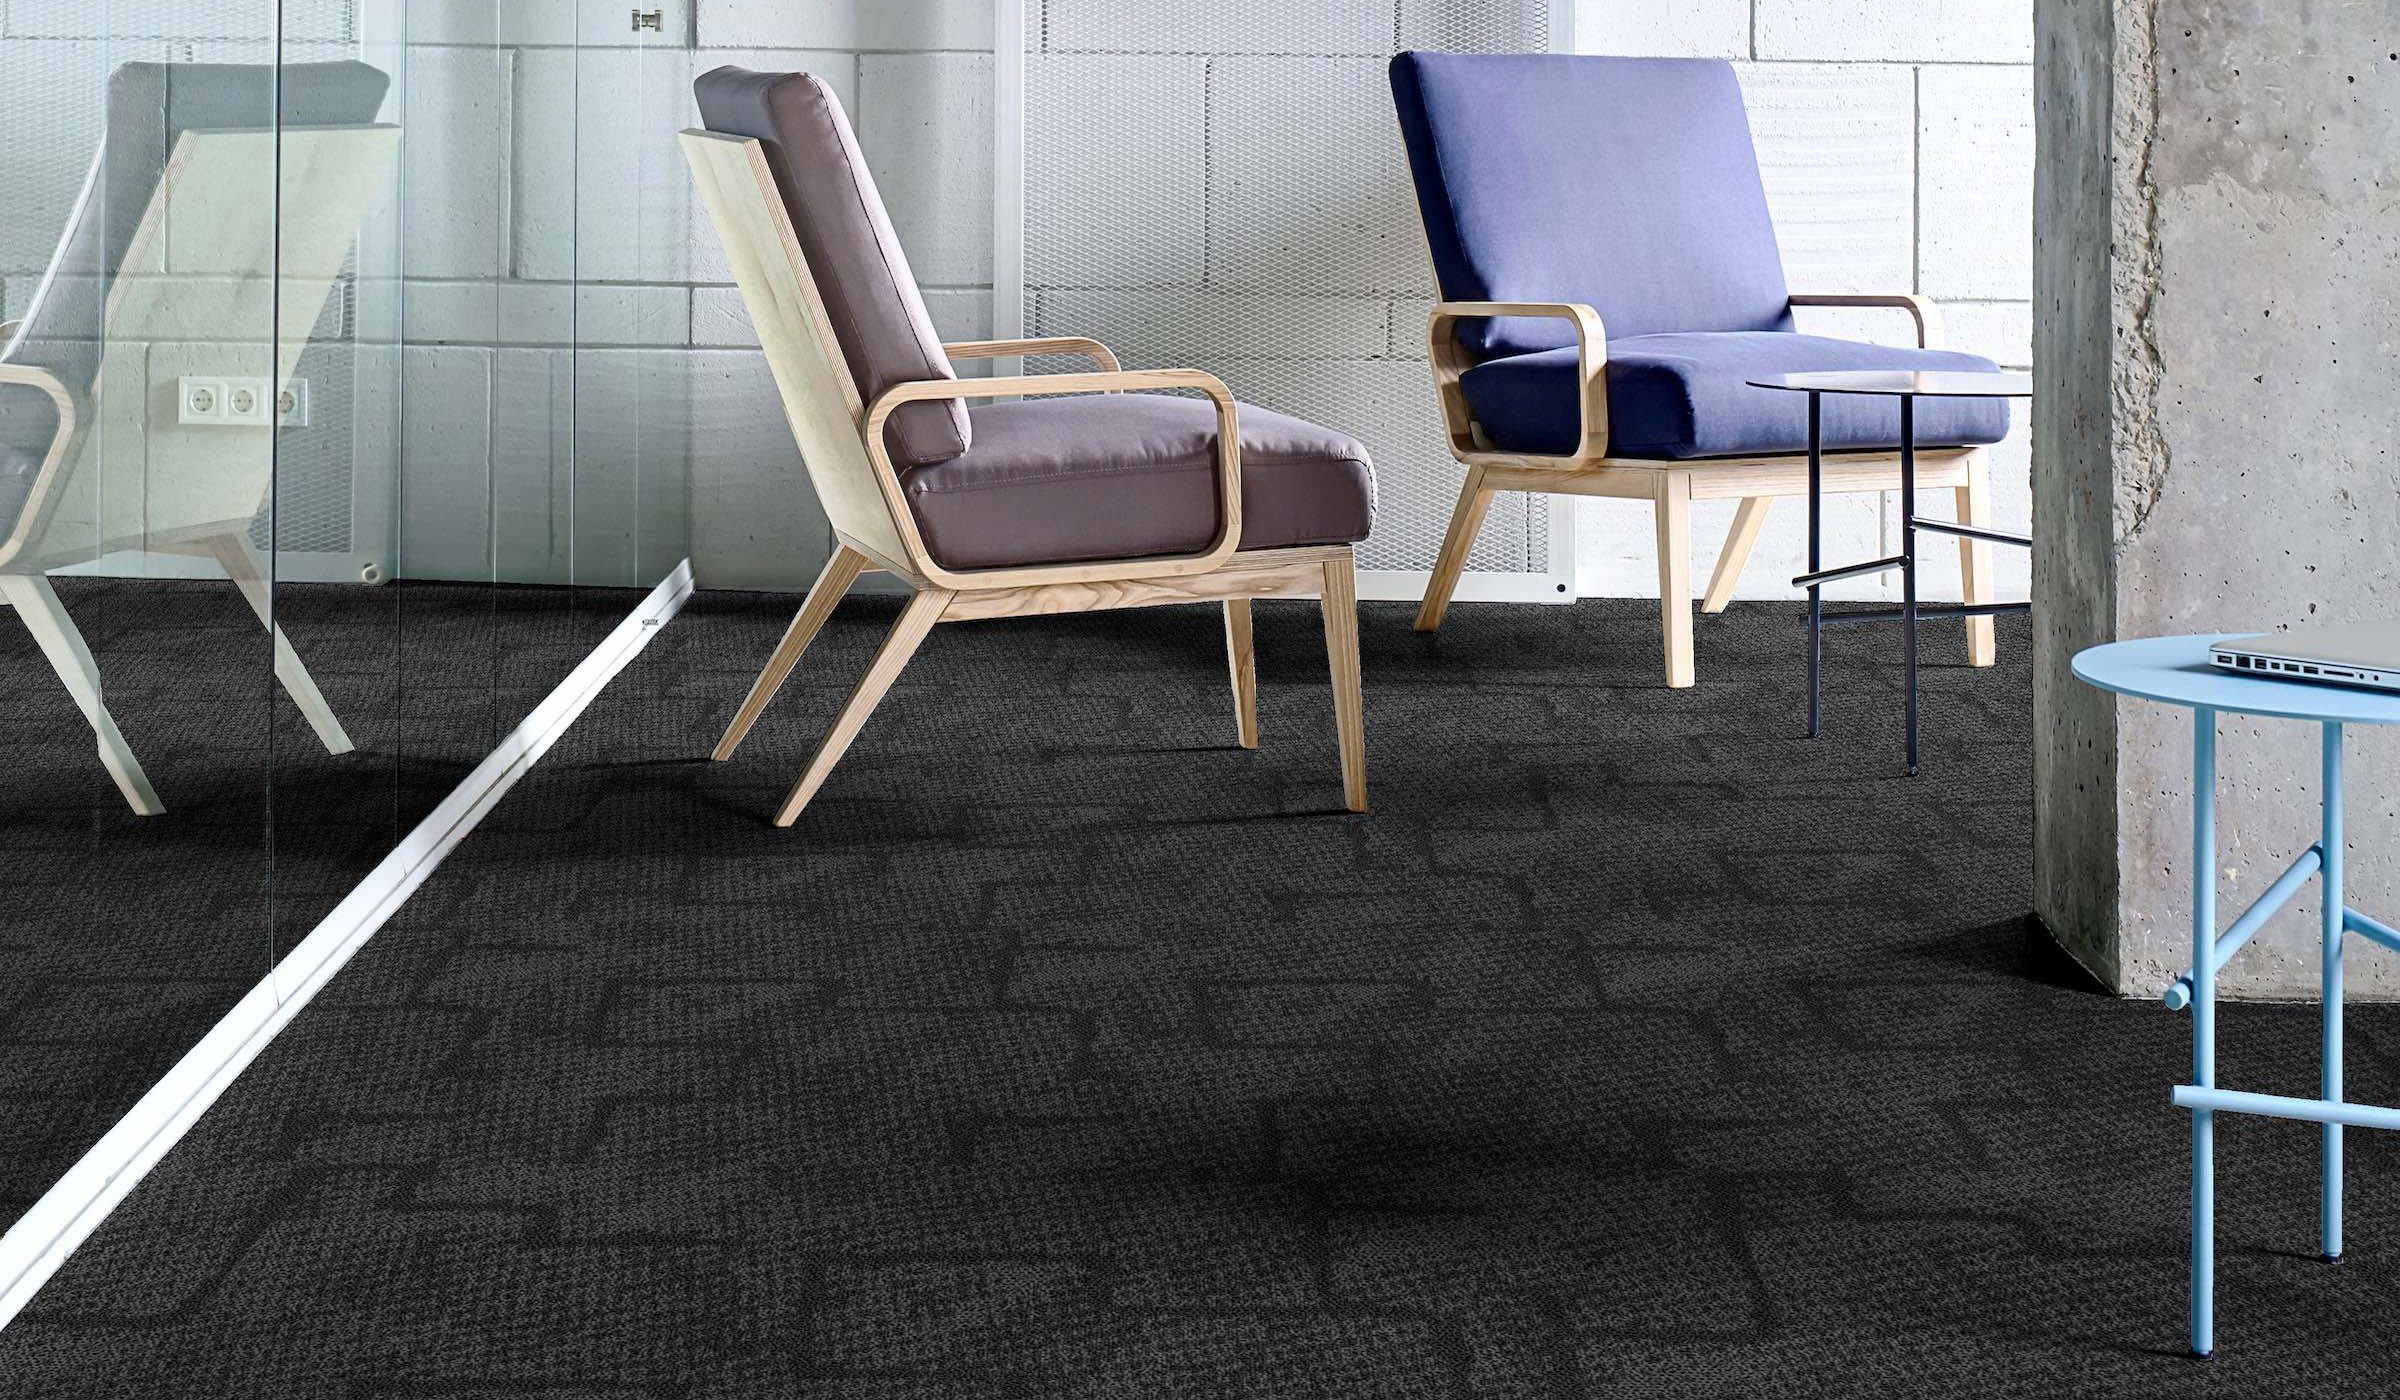 Inspiration Collection | Mesh Mild Sienna | Paragon Carpet Tiles | Commercial Carpet Tiles | Design Carpet Tiles